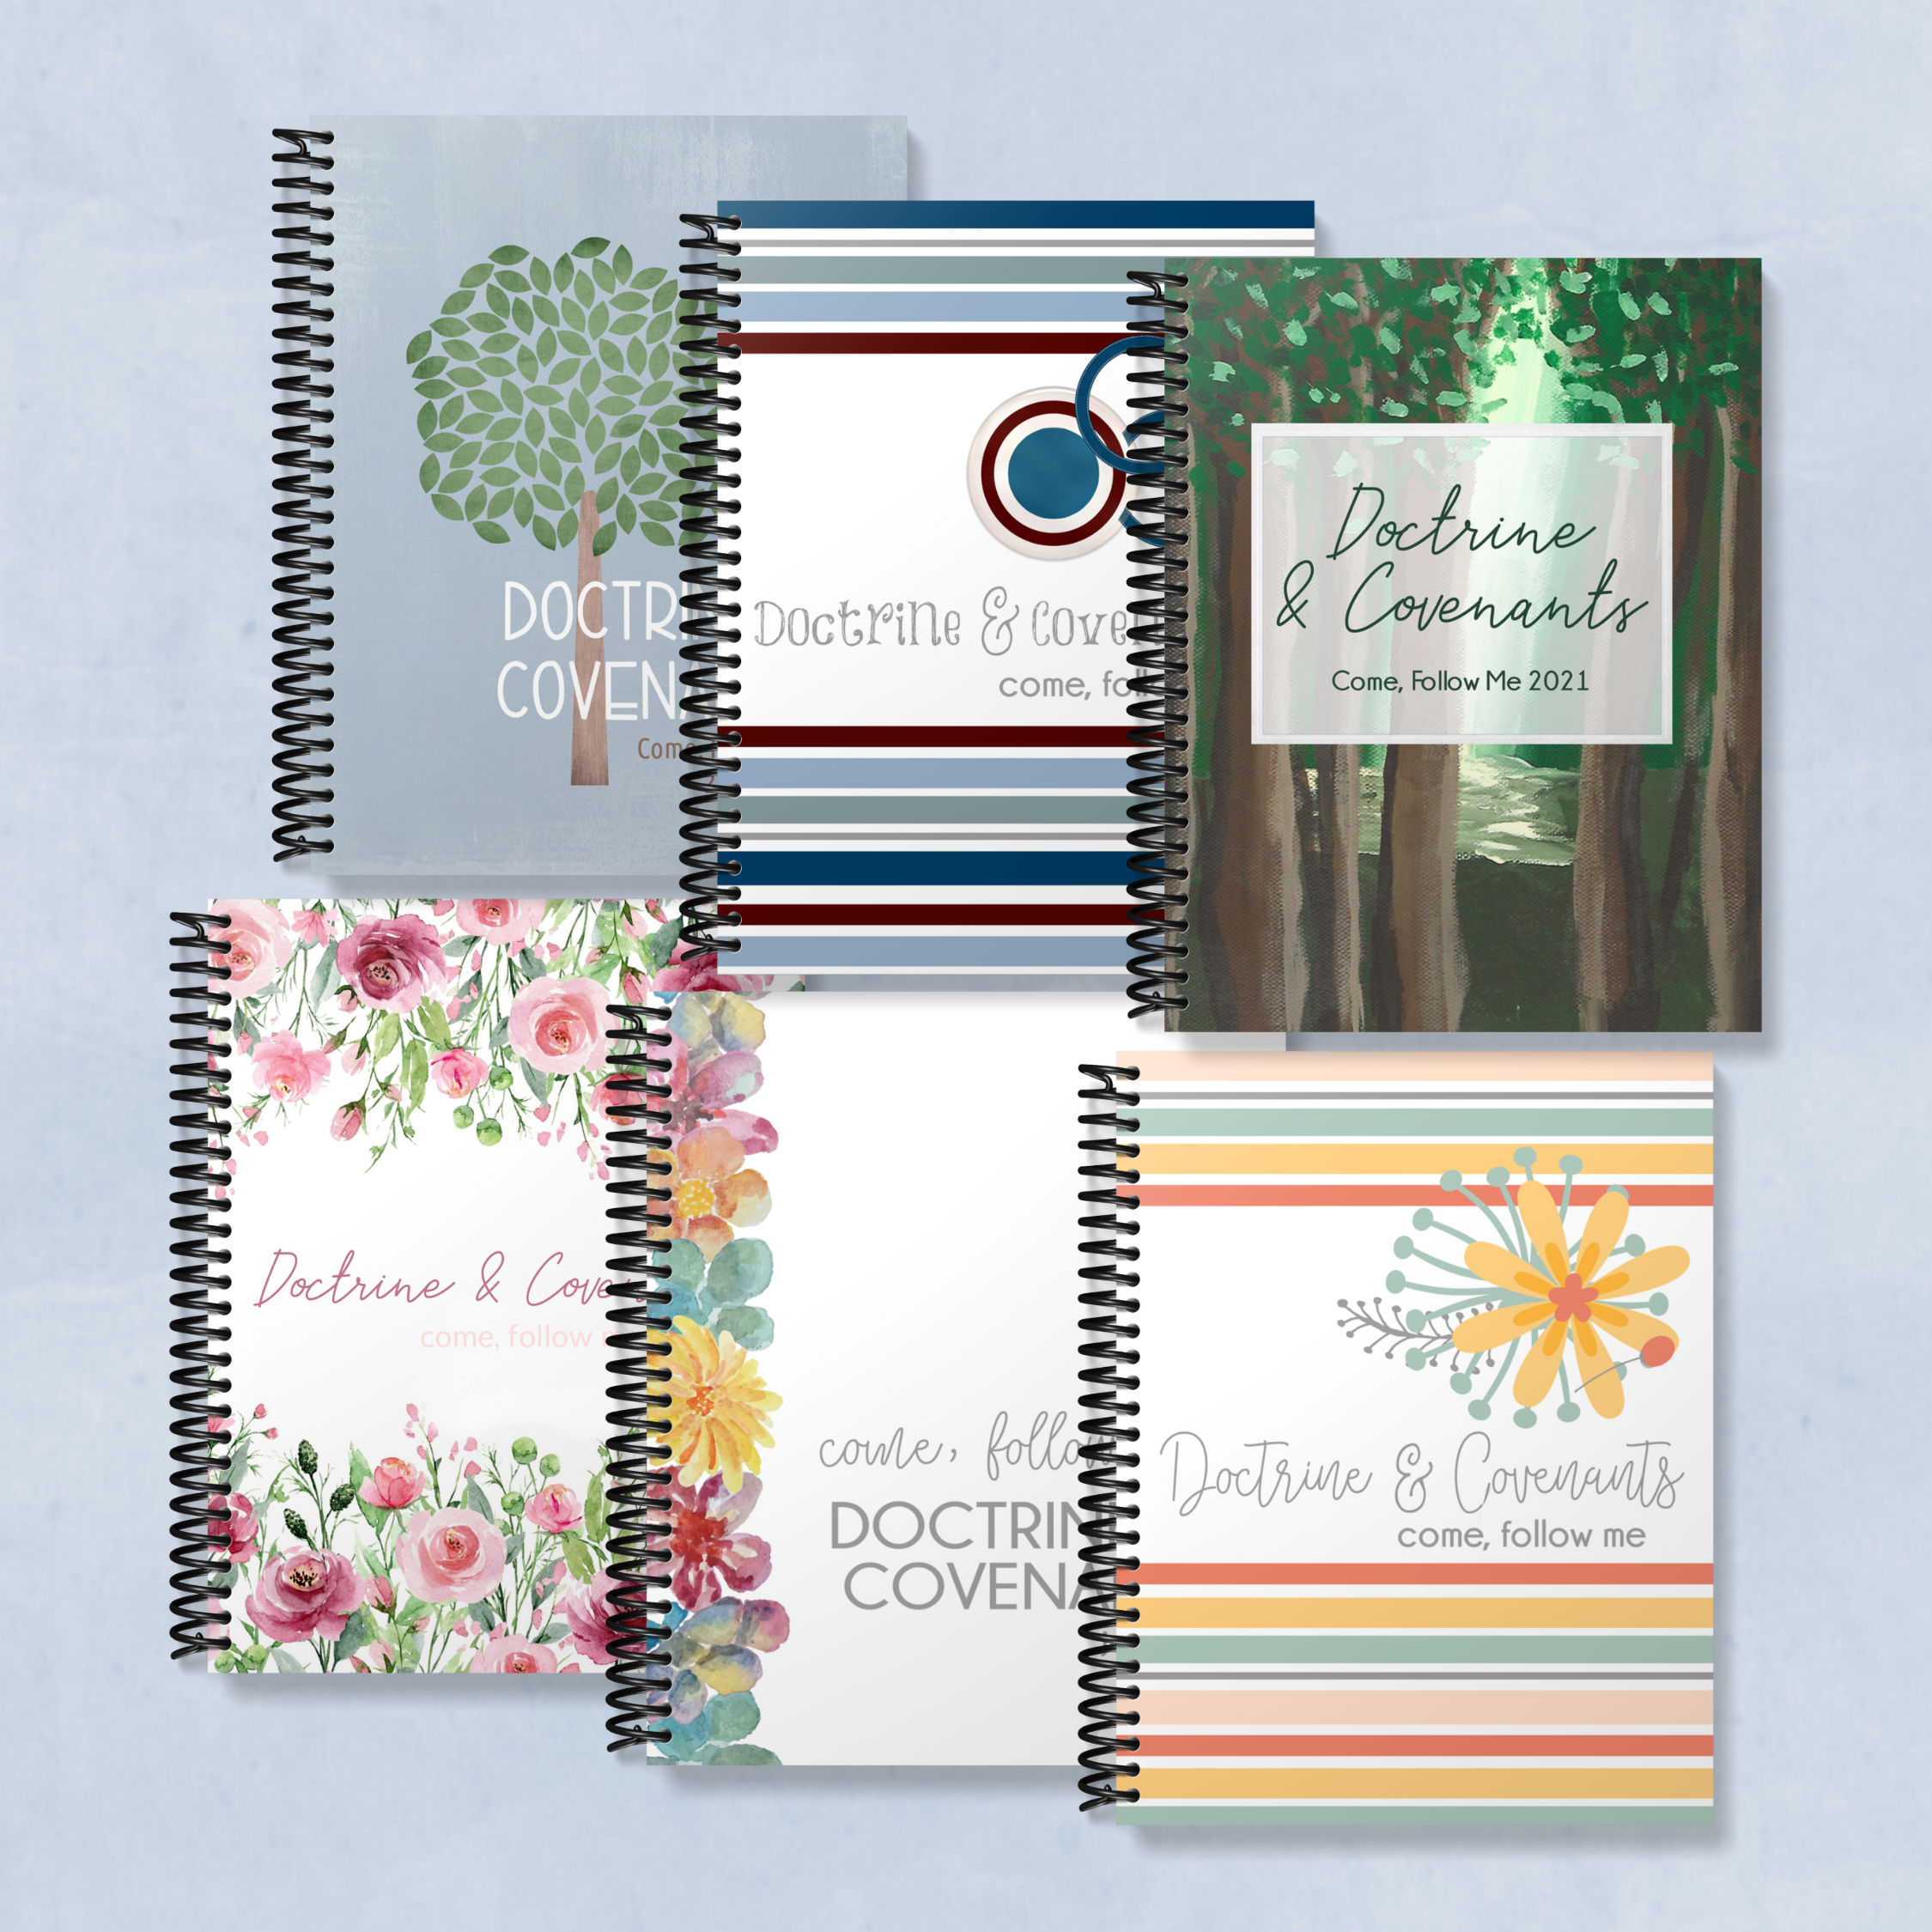 come follow me 2021 Doctrine and Covenants journals, family pack